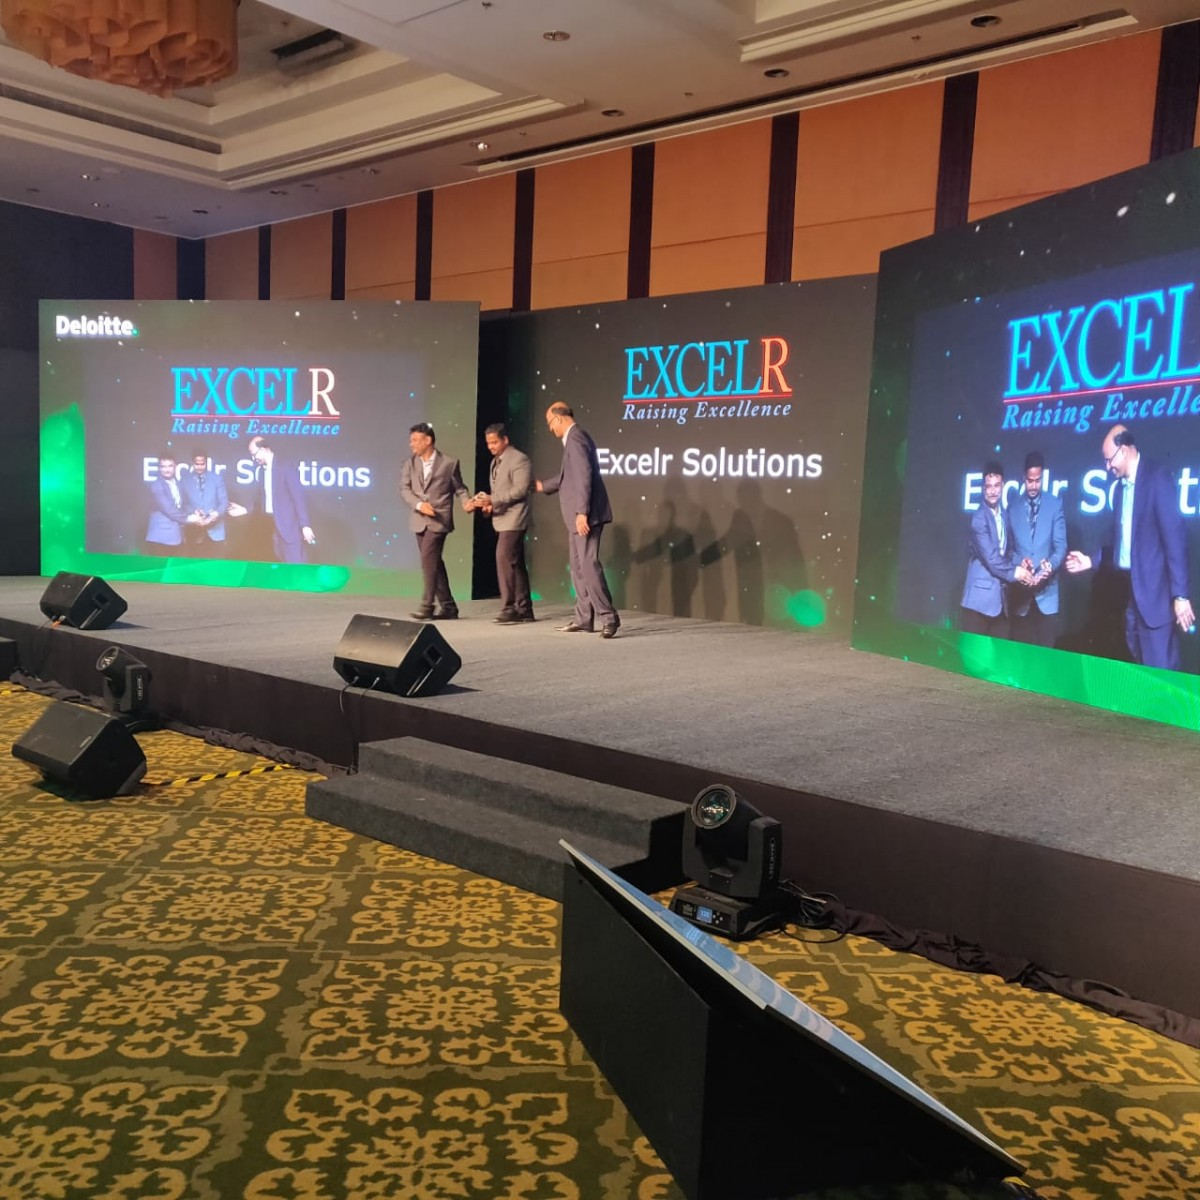 ExcelR solutions ranked 26th fastest growing technology company by Deloitte